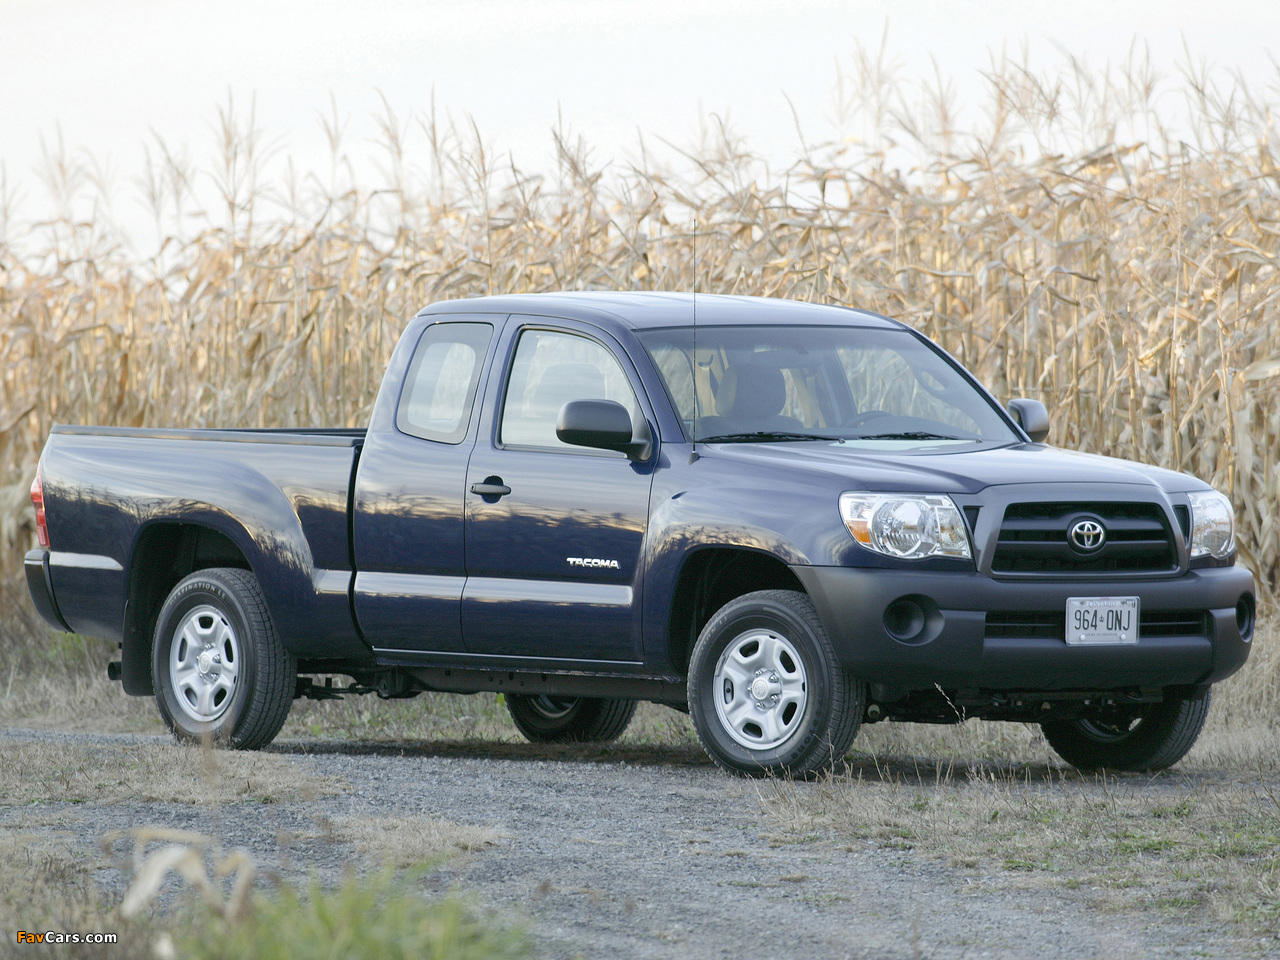 photos of toyota tacoma access cab 2005 12 1280x960. Black Bedroom Furniture Sets. Home Design Ideas